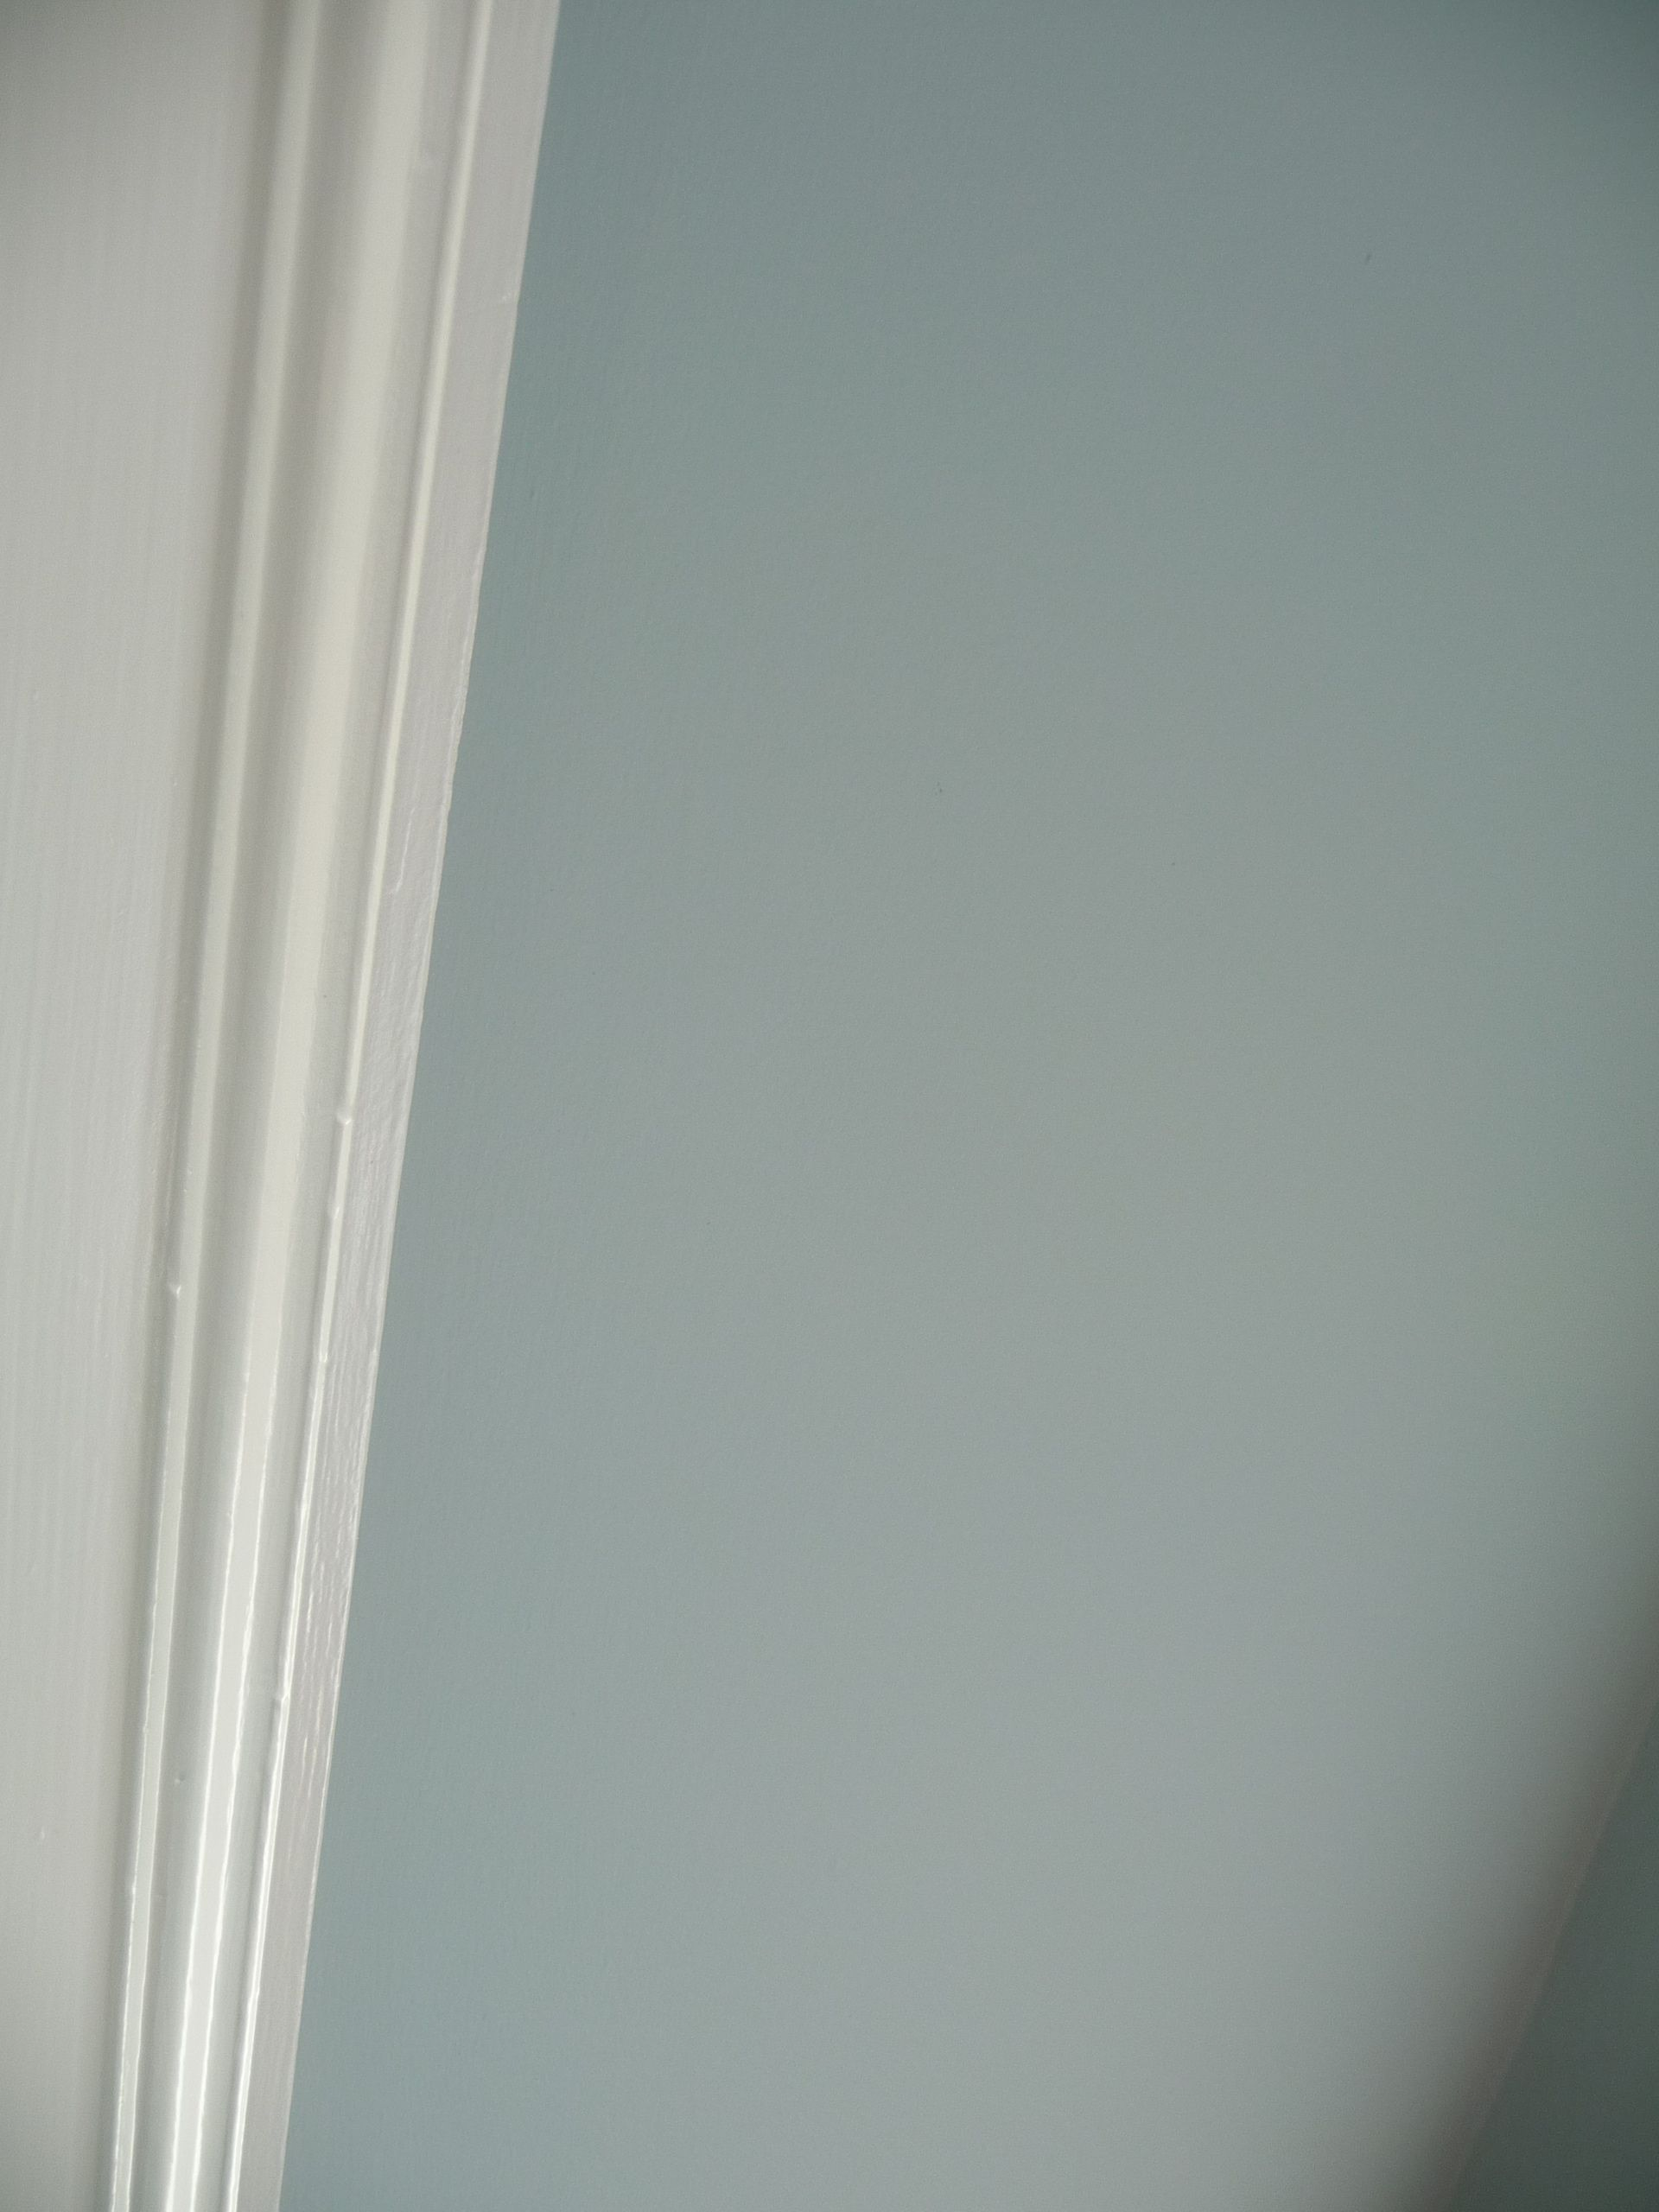 Light Blue Paint Colors Bedroom Benjamin Moore Pale Smoke Smoke Kitchen Possibilities